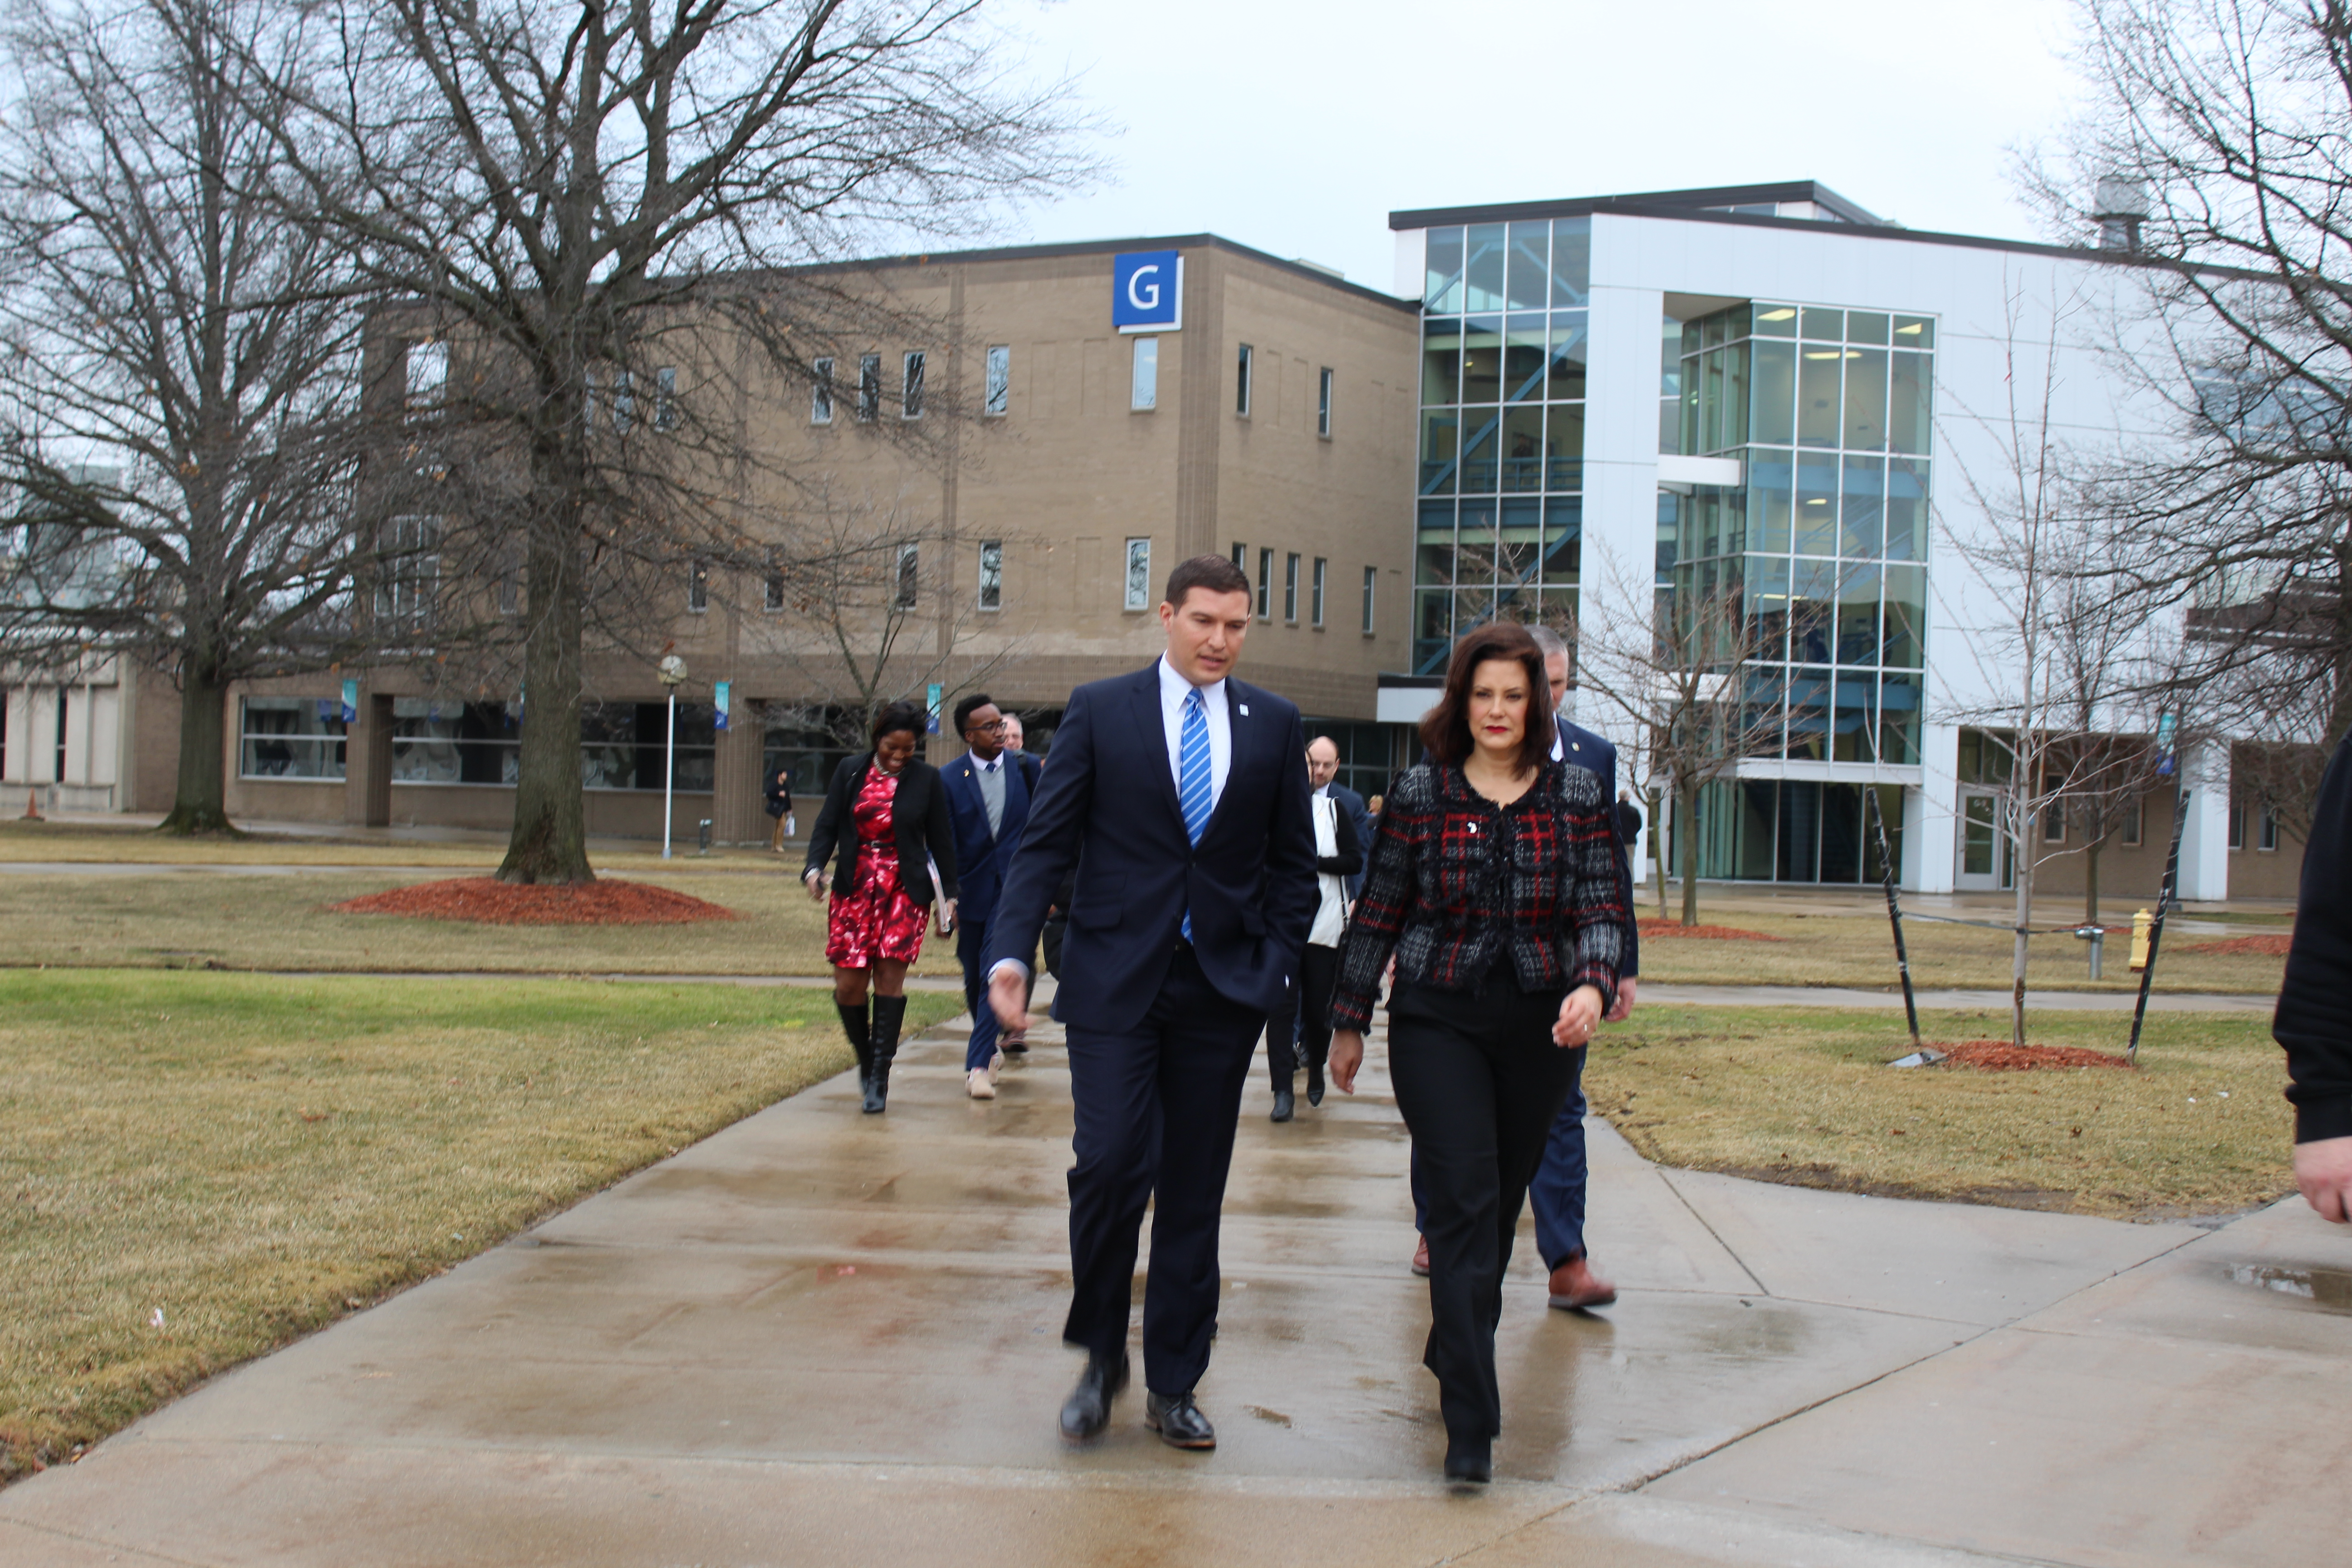 Henry Ford College President Russell Kavalhuna (left) with Governor Gretchen Whitmer (right) at Henry Ford College, Dearborn, MI, March 14, 2019 photo by Fatima Nkata